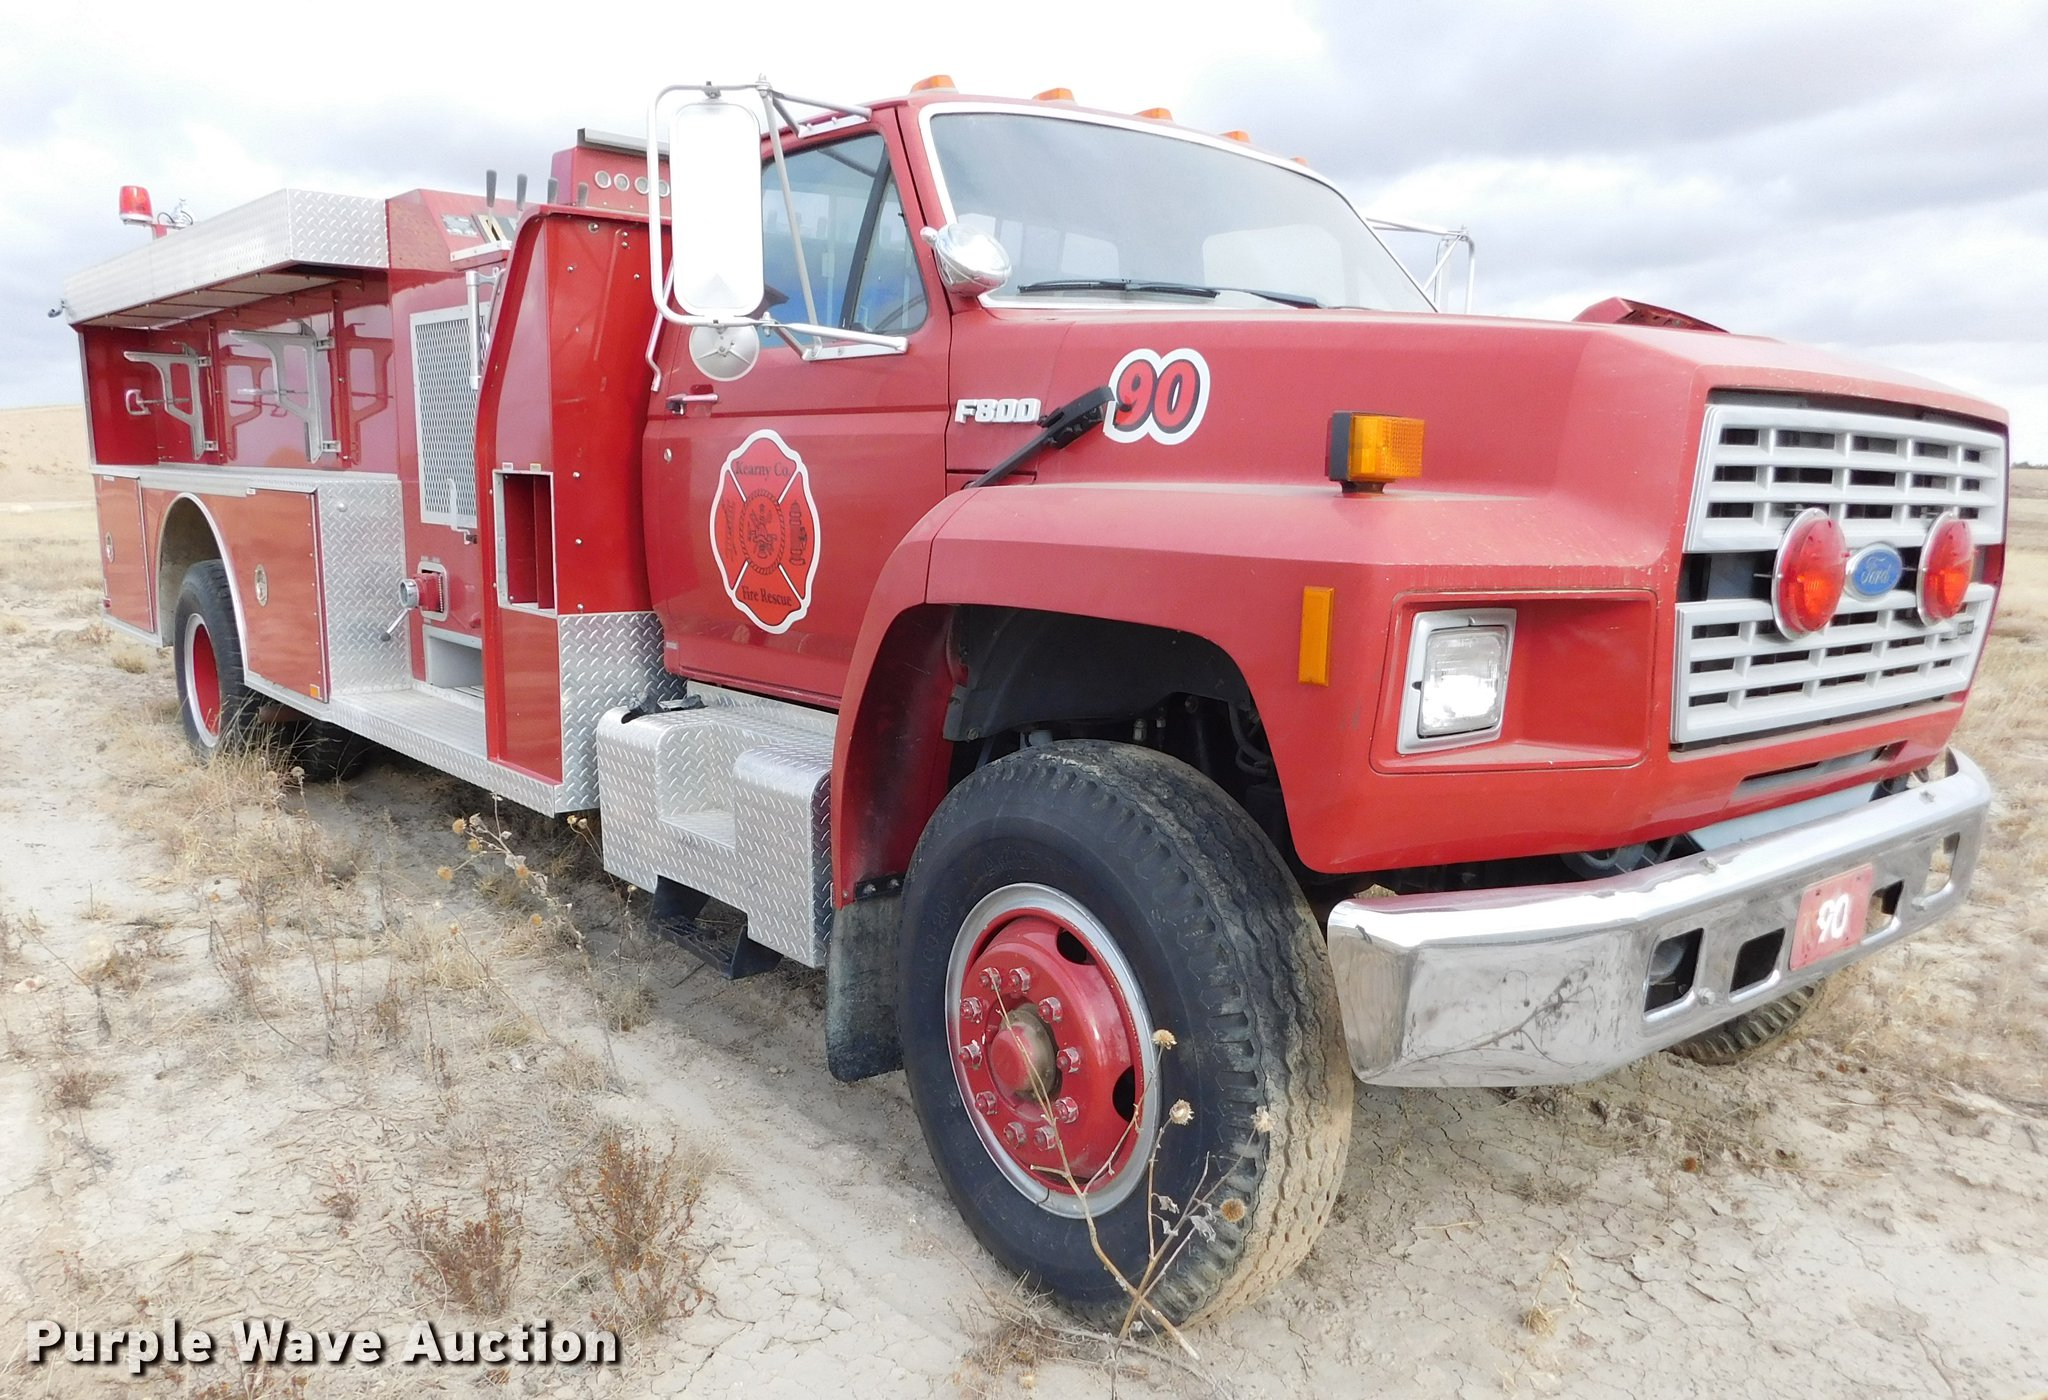 ... 1991 Ford F800 fire truck Full size in new window ...